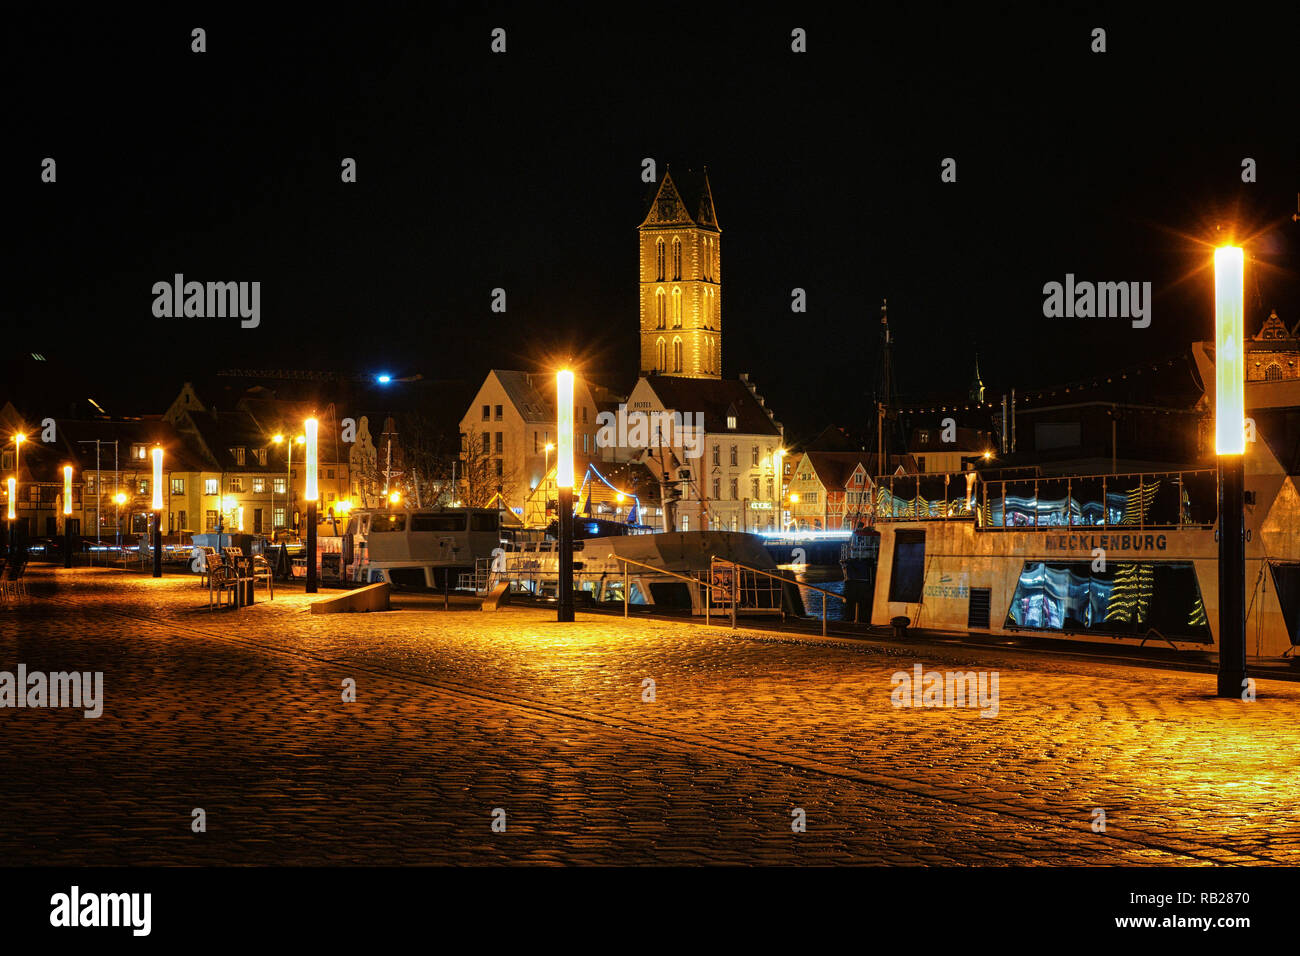 Harbor in Wismar at the Baltic Sea at night. - Stock Image